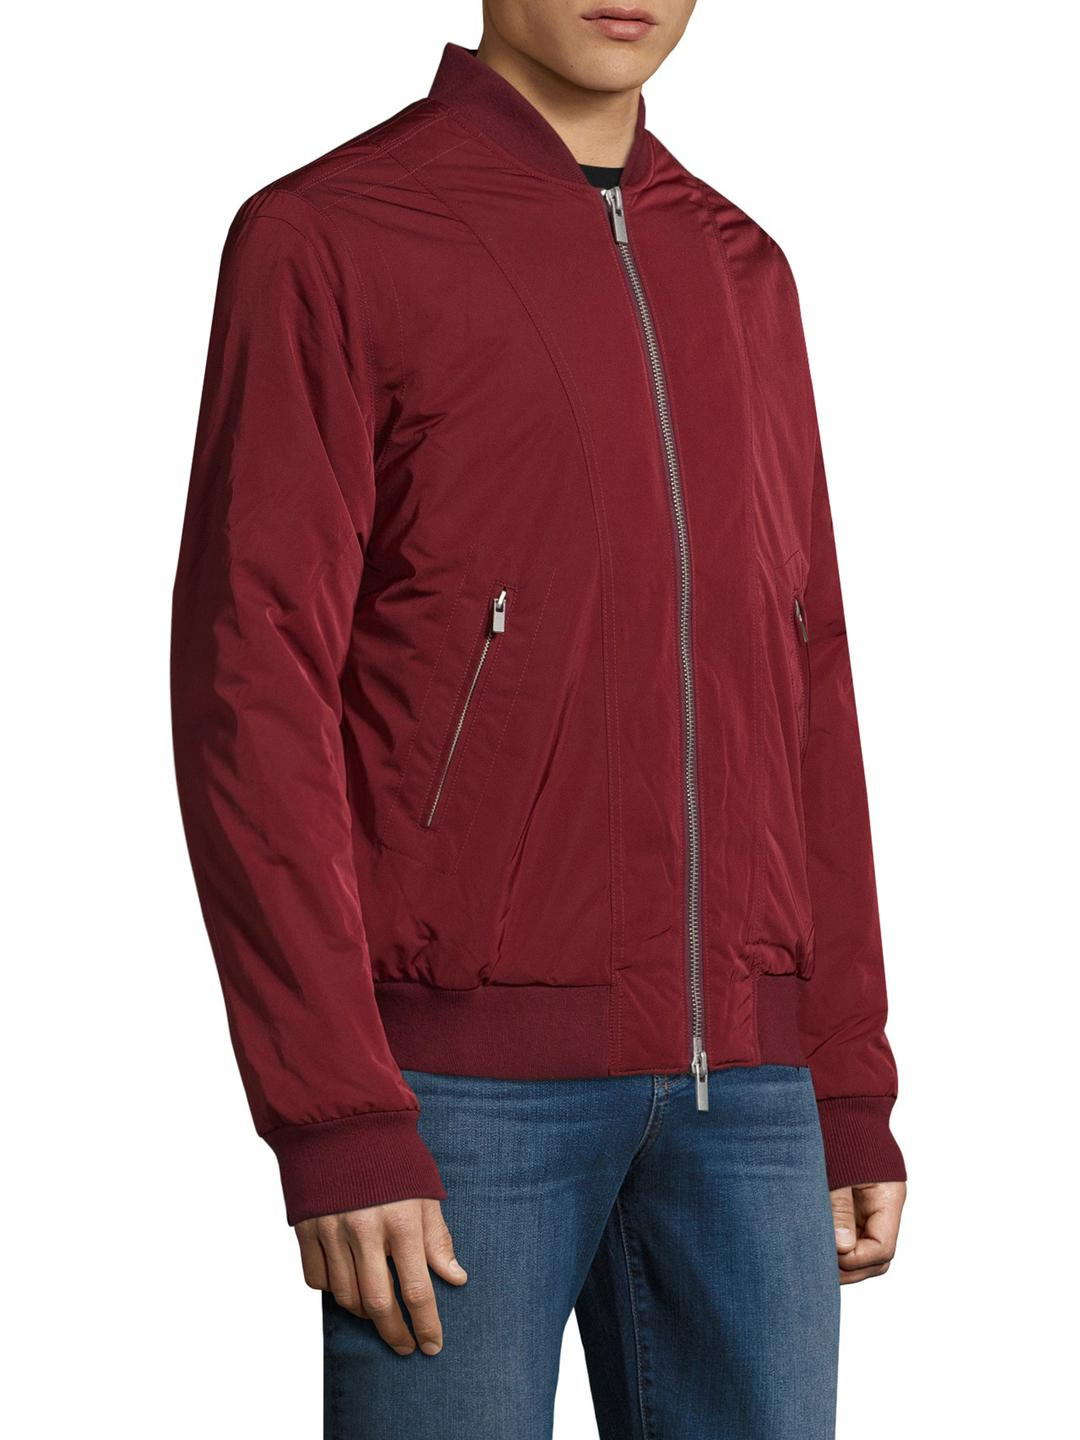 BLK DNM Synthetic 85 Solid Jacket in Burgundy (Red) for Men